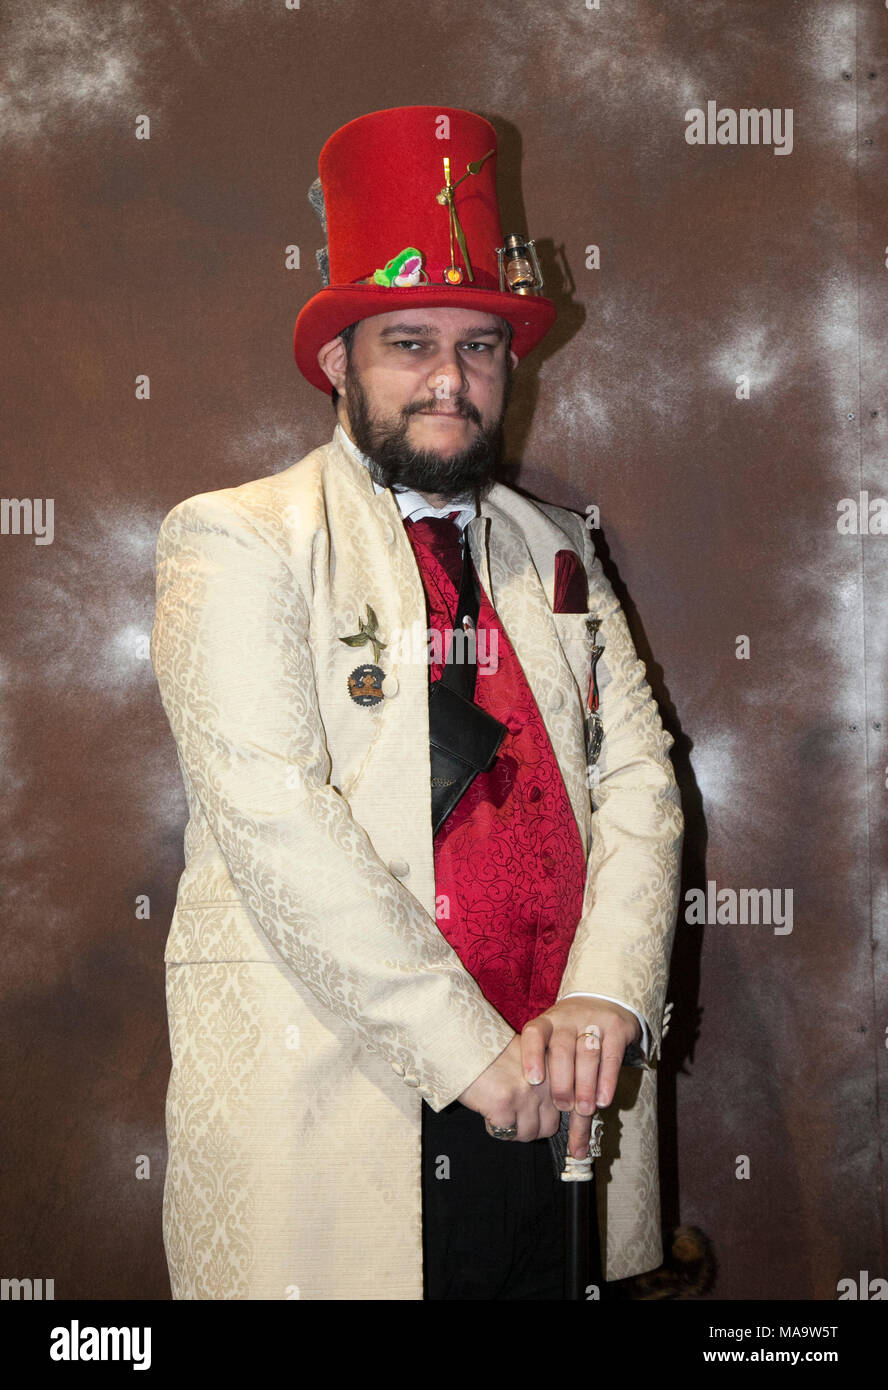 Manchester, UK 31th March 2018.  Post apocalyptic Weekend at the Asylum, the Planet's largest steampunk festival where a City becomes steampunk Capital for four days. The Victorian Steam punk Society, teamed up with Manchester's Bowlers Exhibition Centre and the organisers of For the Love of Sci Fi to create a Cosplay Expo. Credit: MediaWorldImages/AlamyLiveNews - Stock Image